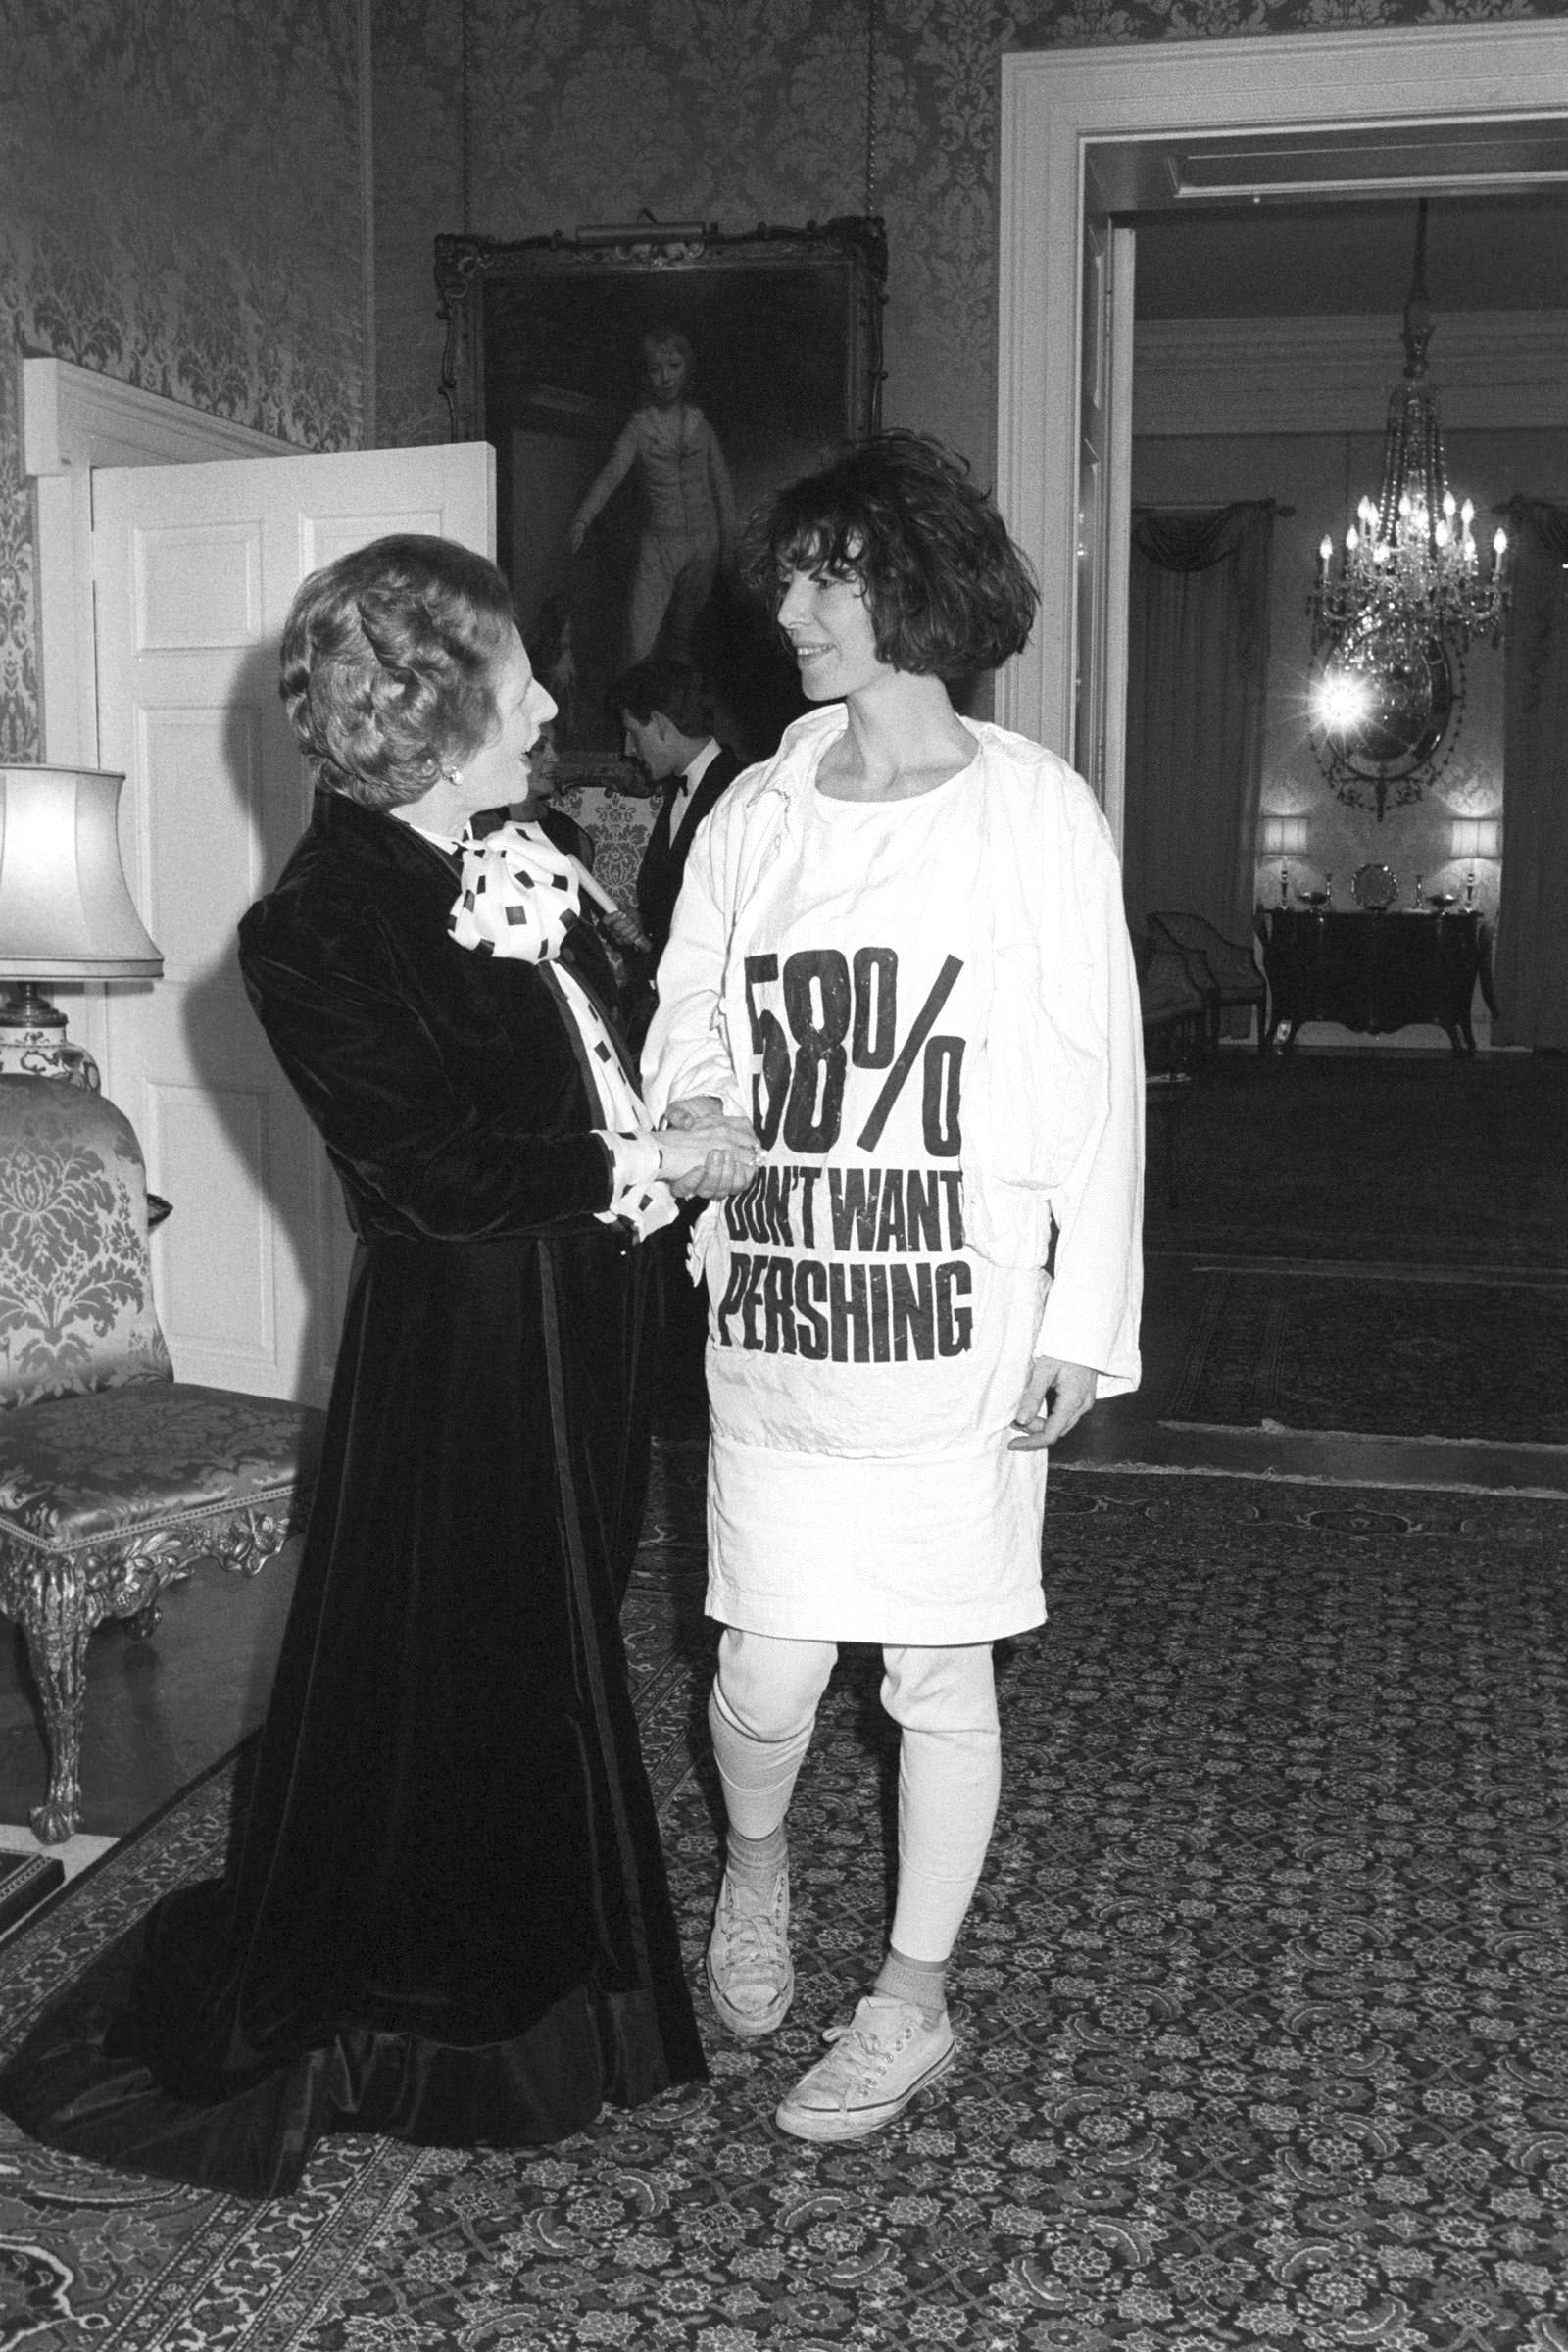 FASHION ACTIVISM AS AN ART FORM